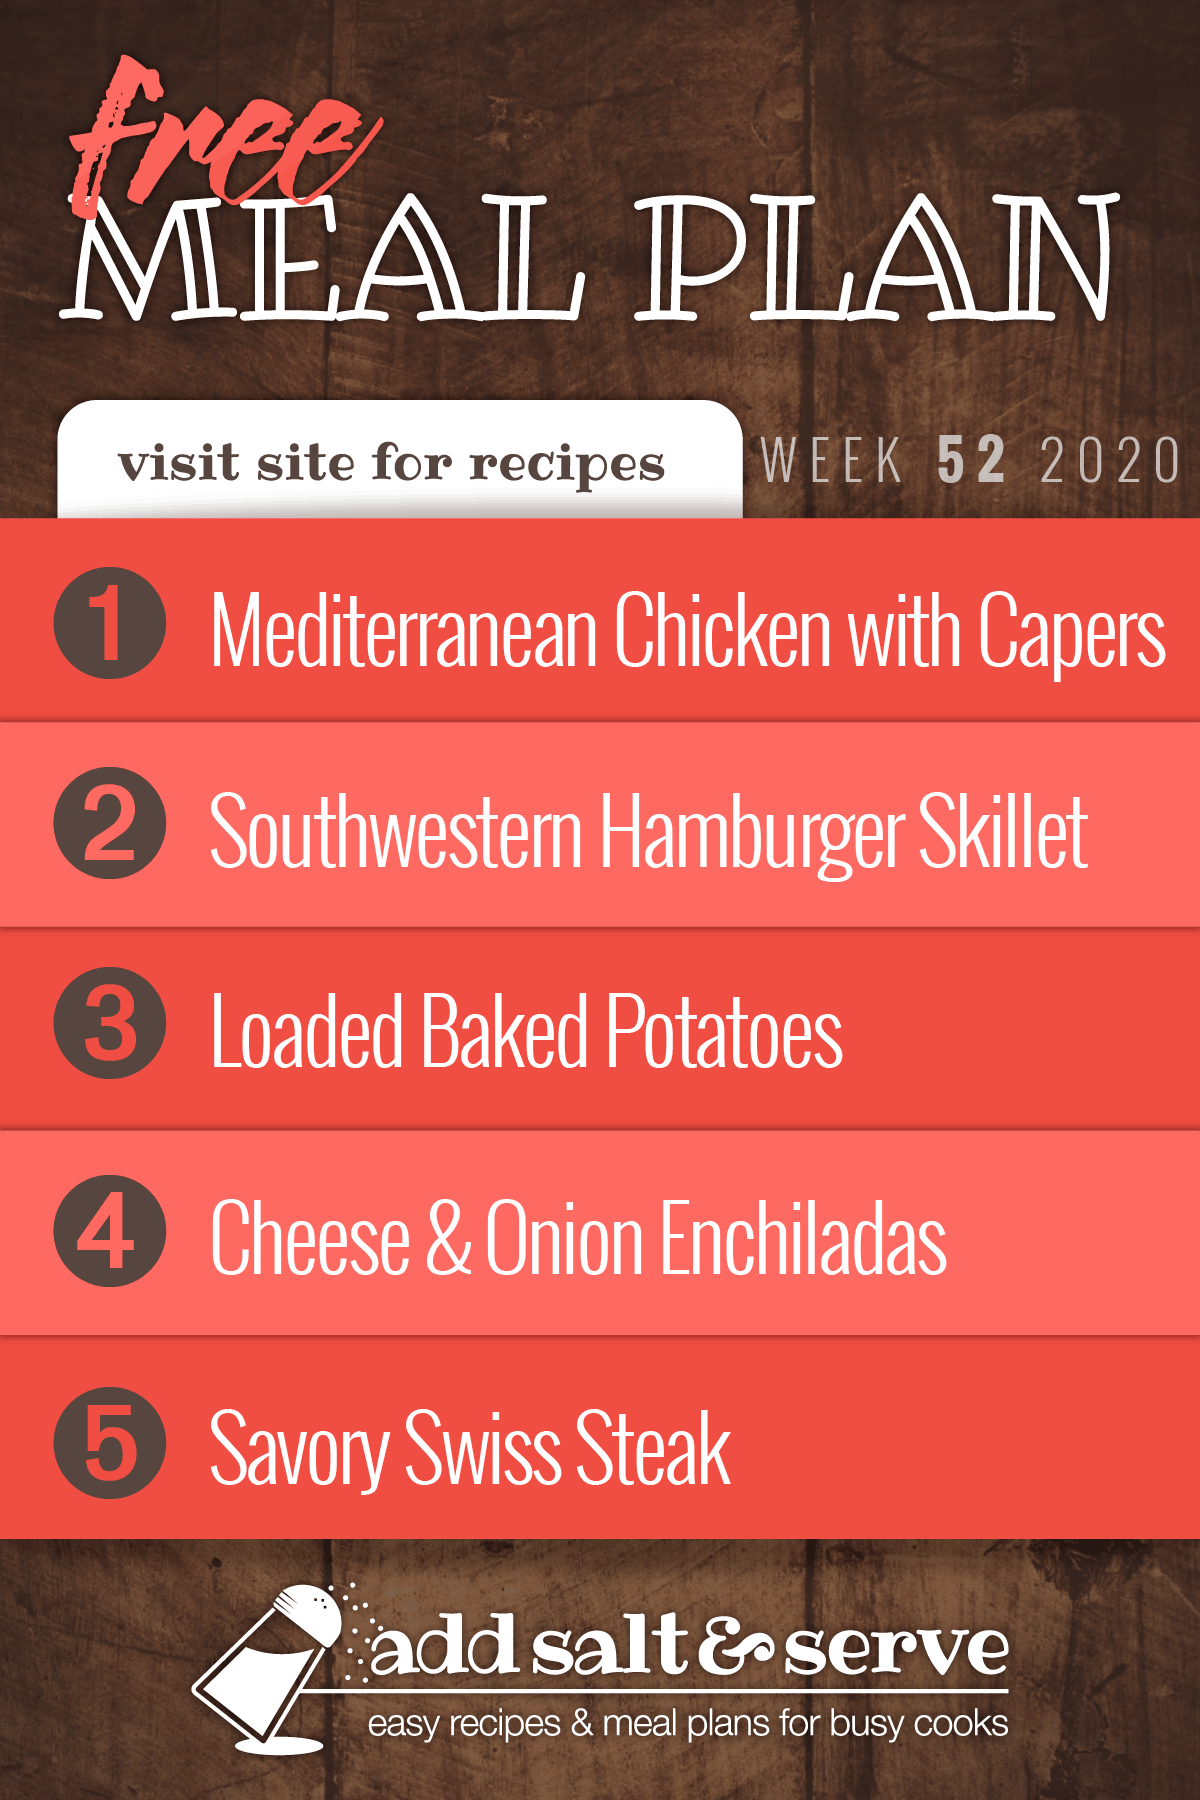 Free Meal Plan for Week 52 2020: Mediterranean Chicken with Capers, Southwestern Hamburger Skillet, Loaded Baked, Cheese & Onion Enchiladas Potatoes, Savory Swiss Steak - get recipes at AddSaltandServe.com